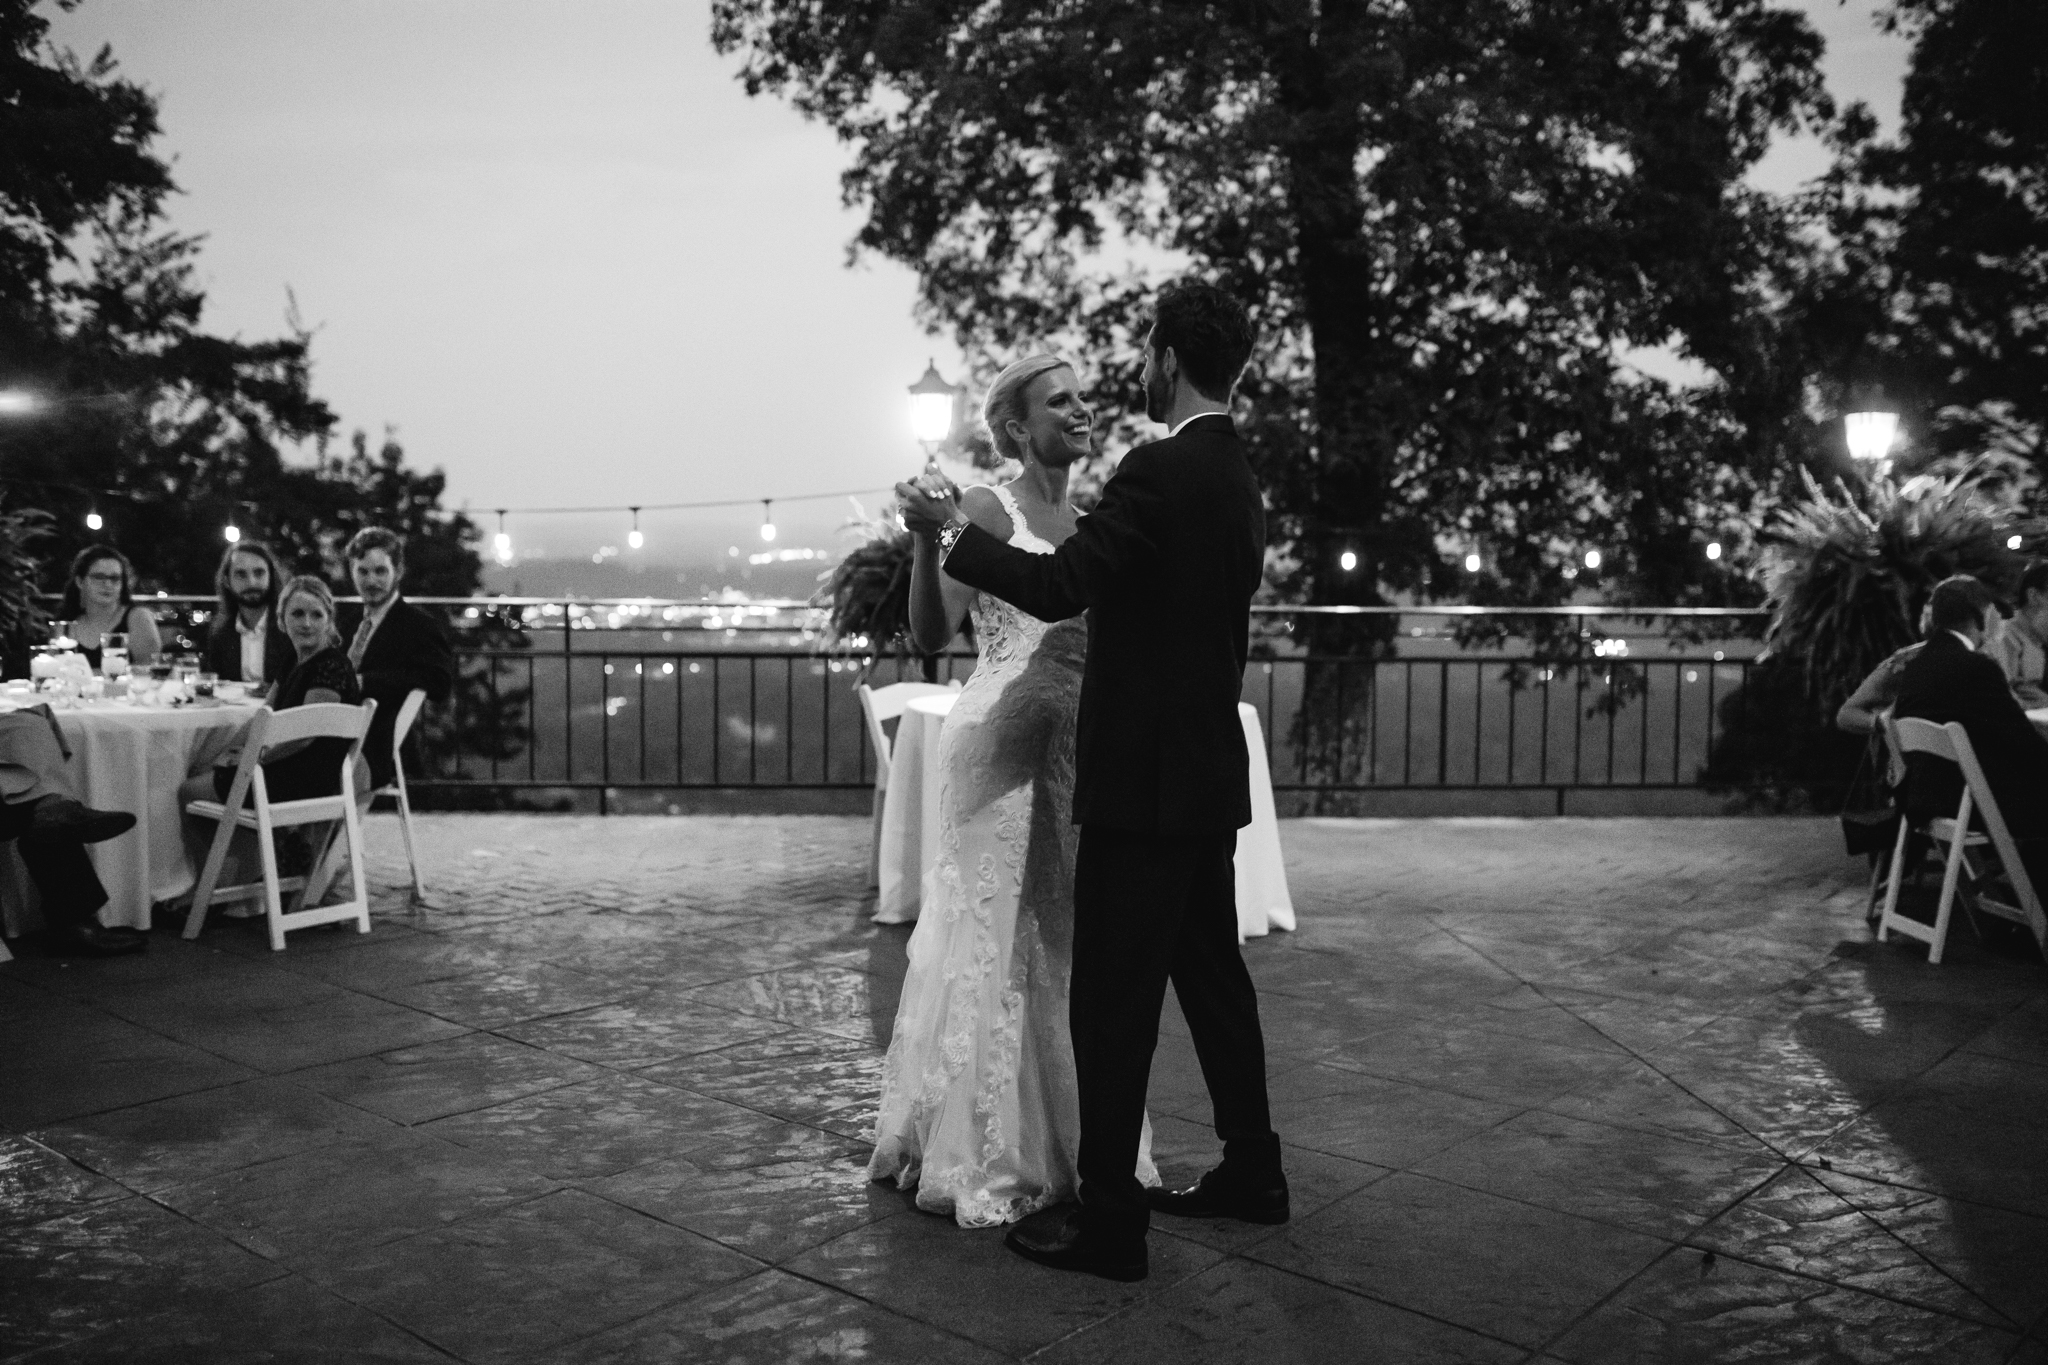 grandview-lookout-mountain-wedding-chattanooga-wedding-photographer (37 of 43).jpg